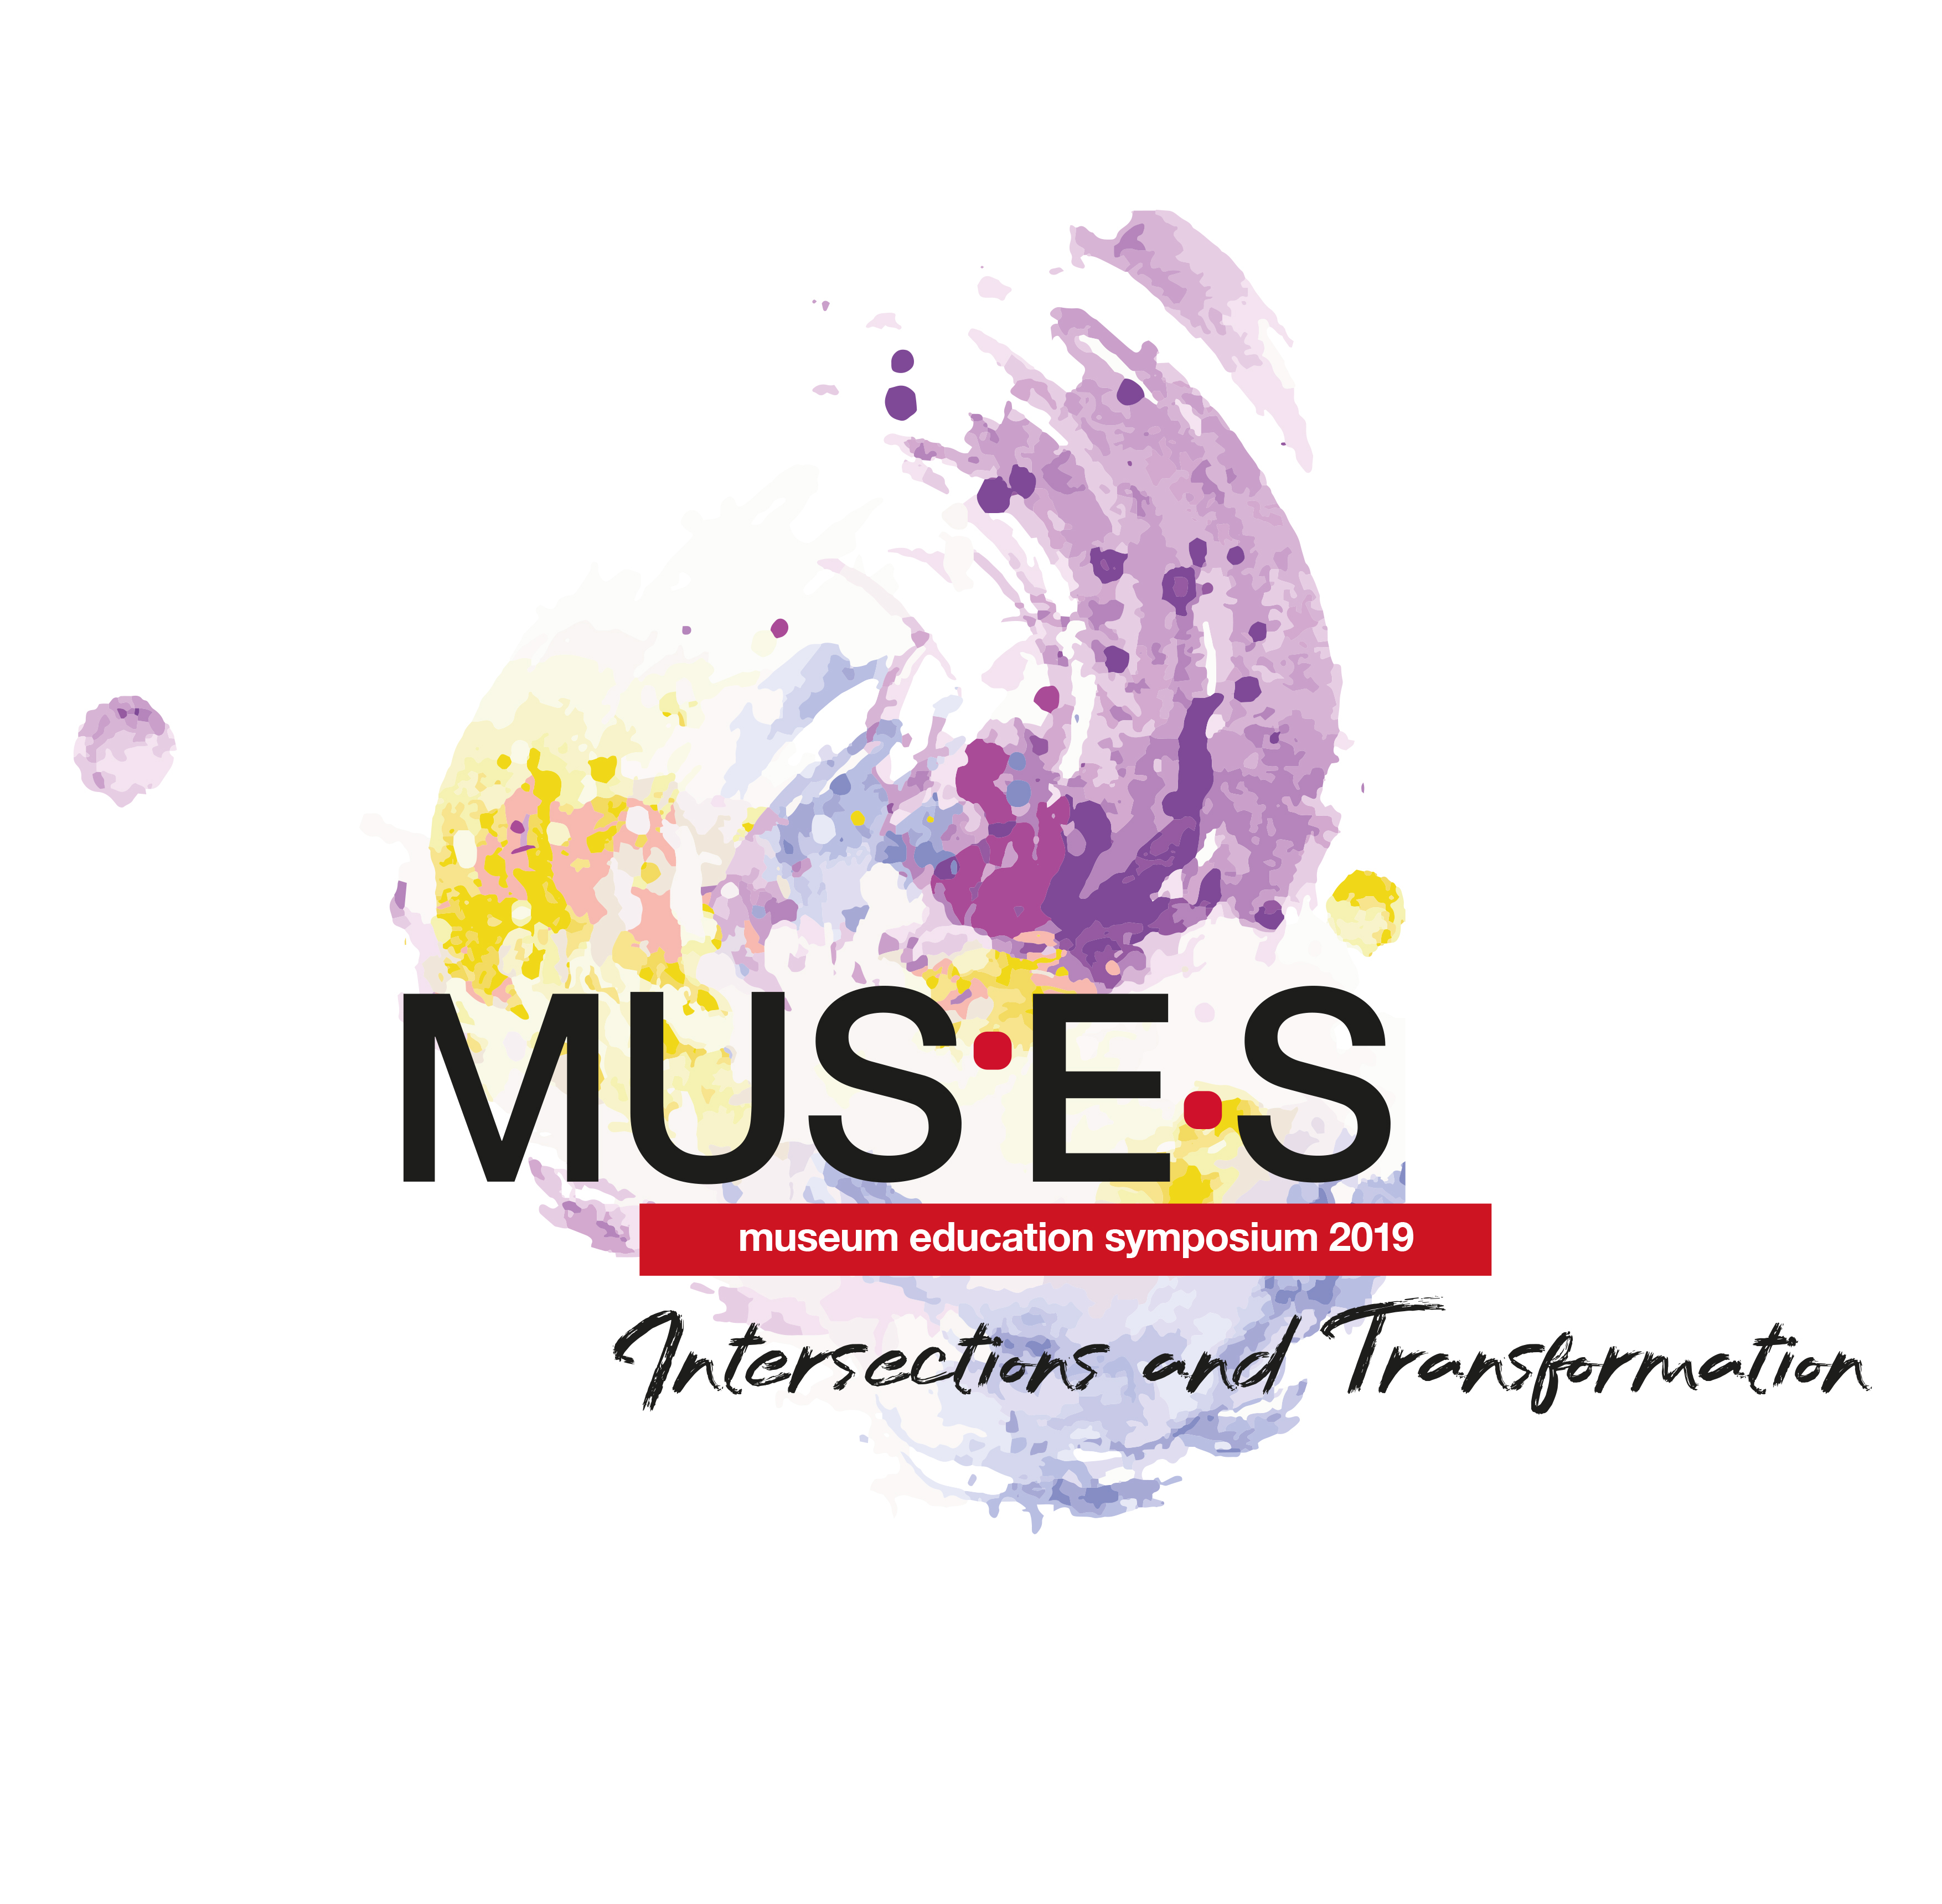 5.2.3 MUSES 4